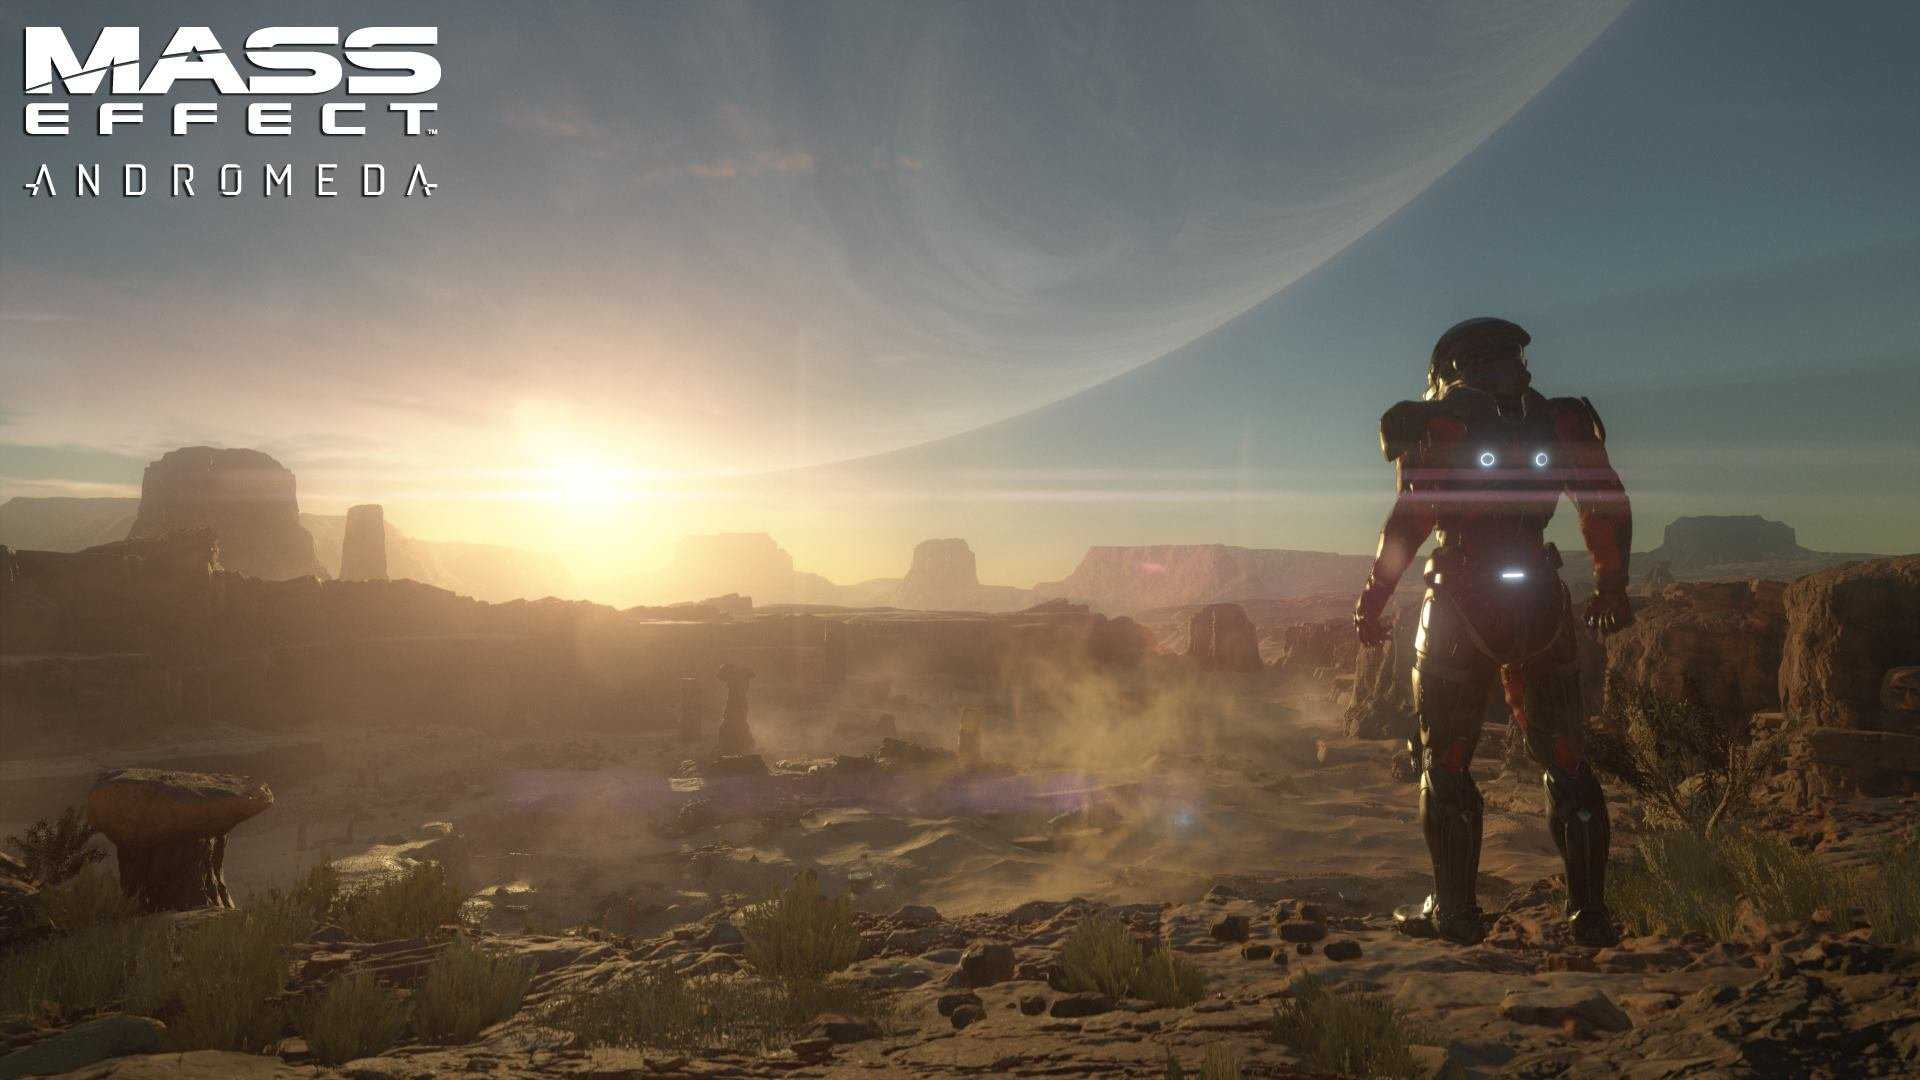 Mass Effect Andromeda 1920x1080: 50 Mass Effect: Andromeda HD Wallpapers